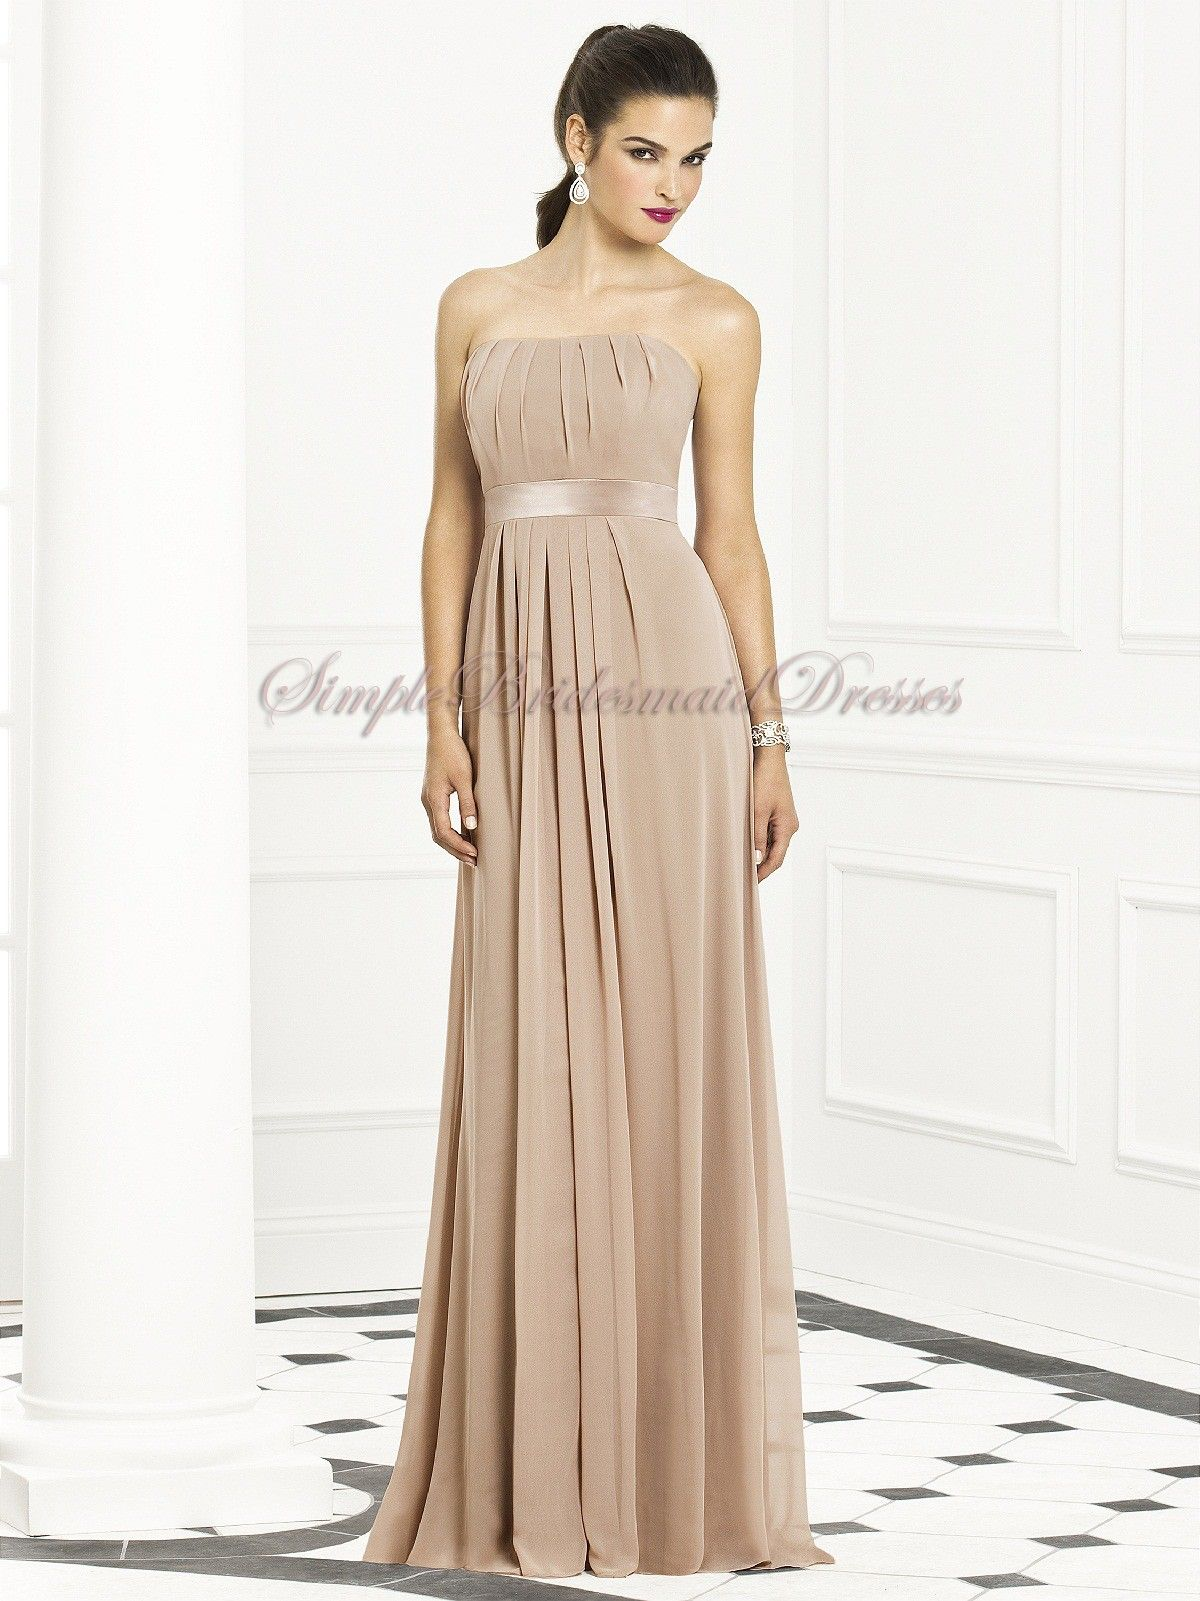 Zipper strapless empire sleeveless floor length a line drapedsash zipper strapless empire sleeveless floor length a line drapedsash topaz chiffon champagne cheap bridesmaid dressesgold ombrellifo Choice Image